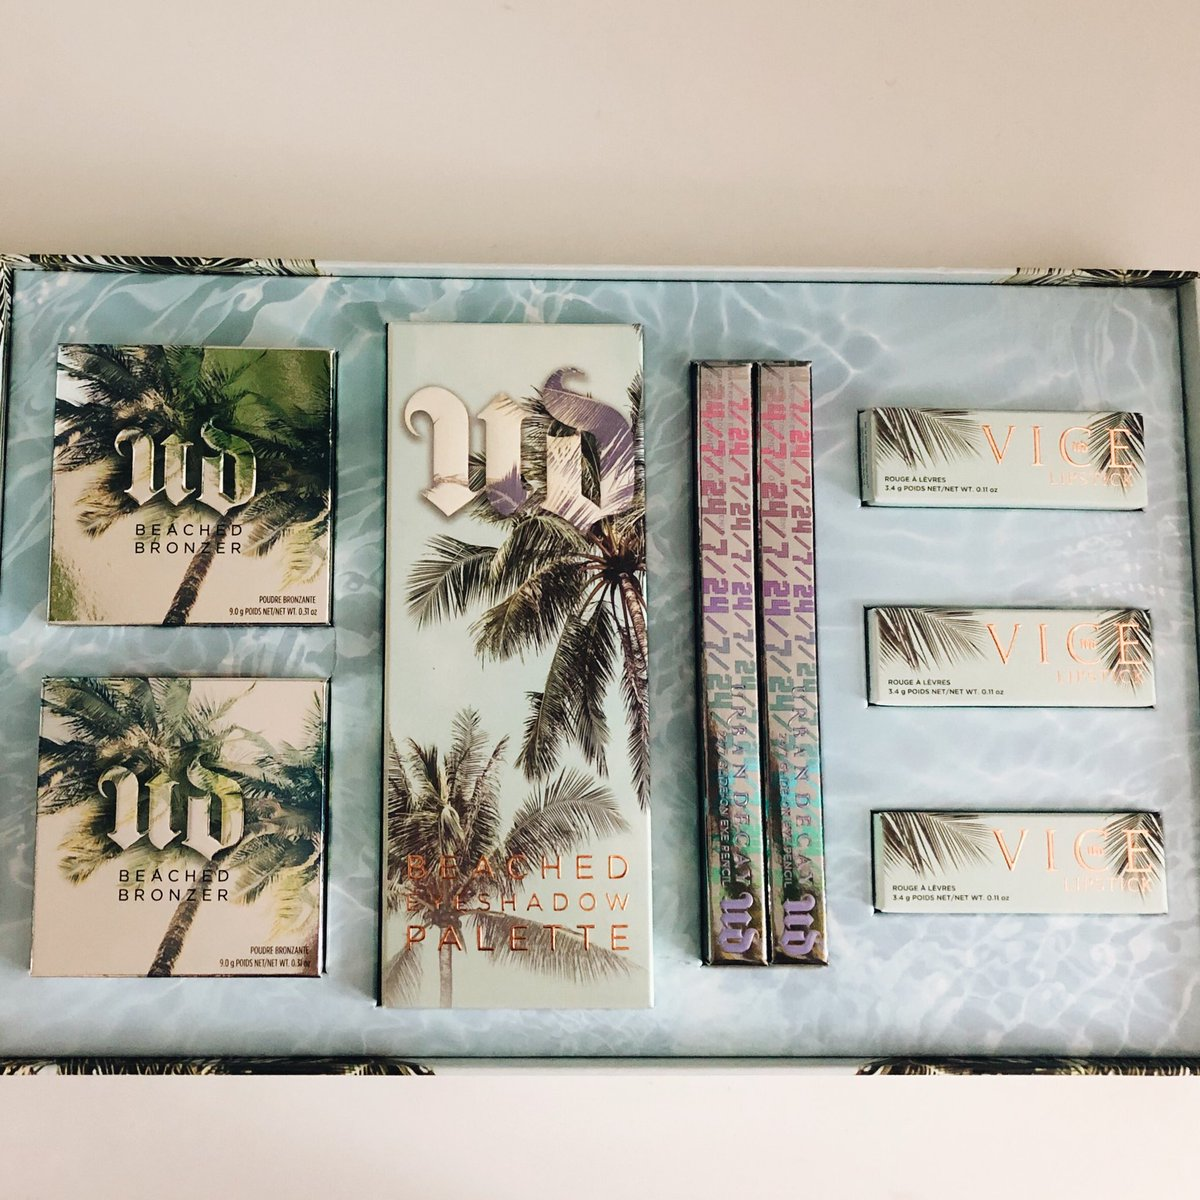 MAKEUP GIVEAWAY! The new Urban Decay Beached collection!! To enter, just follow me & RT this! 💕 Ends May 14th! 🌴